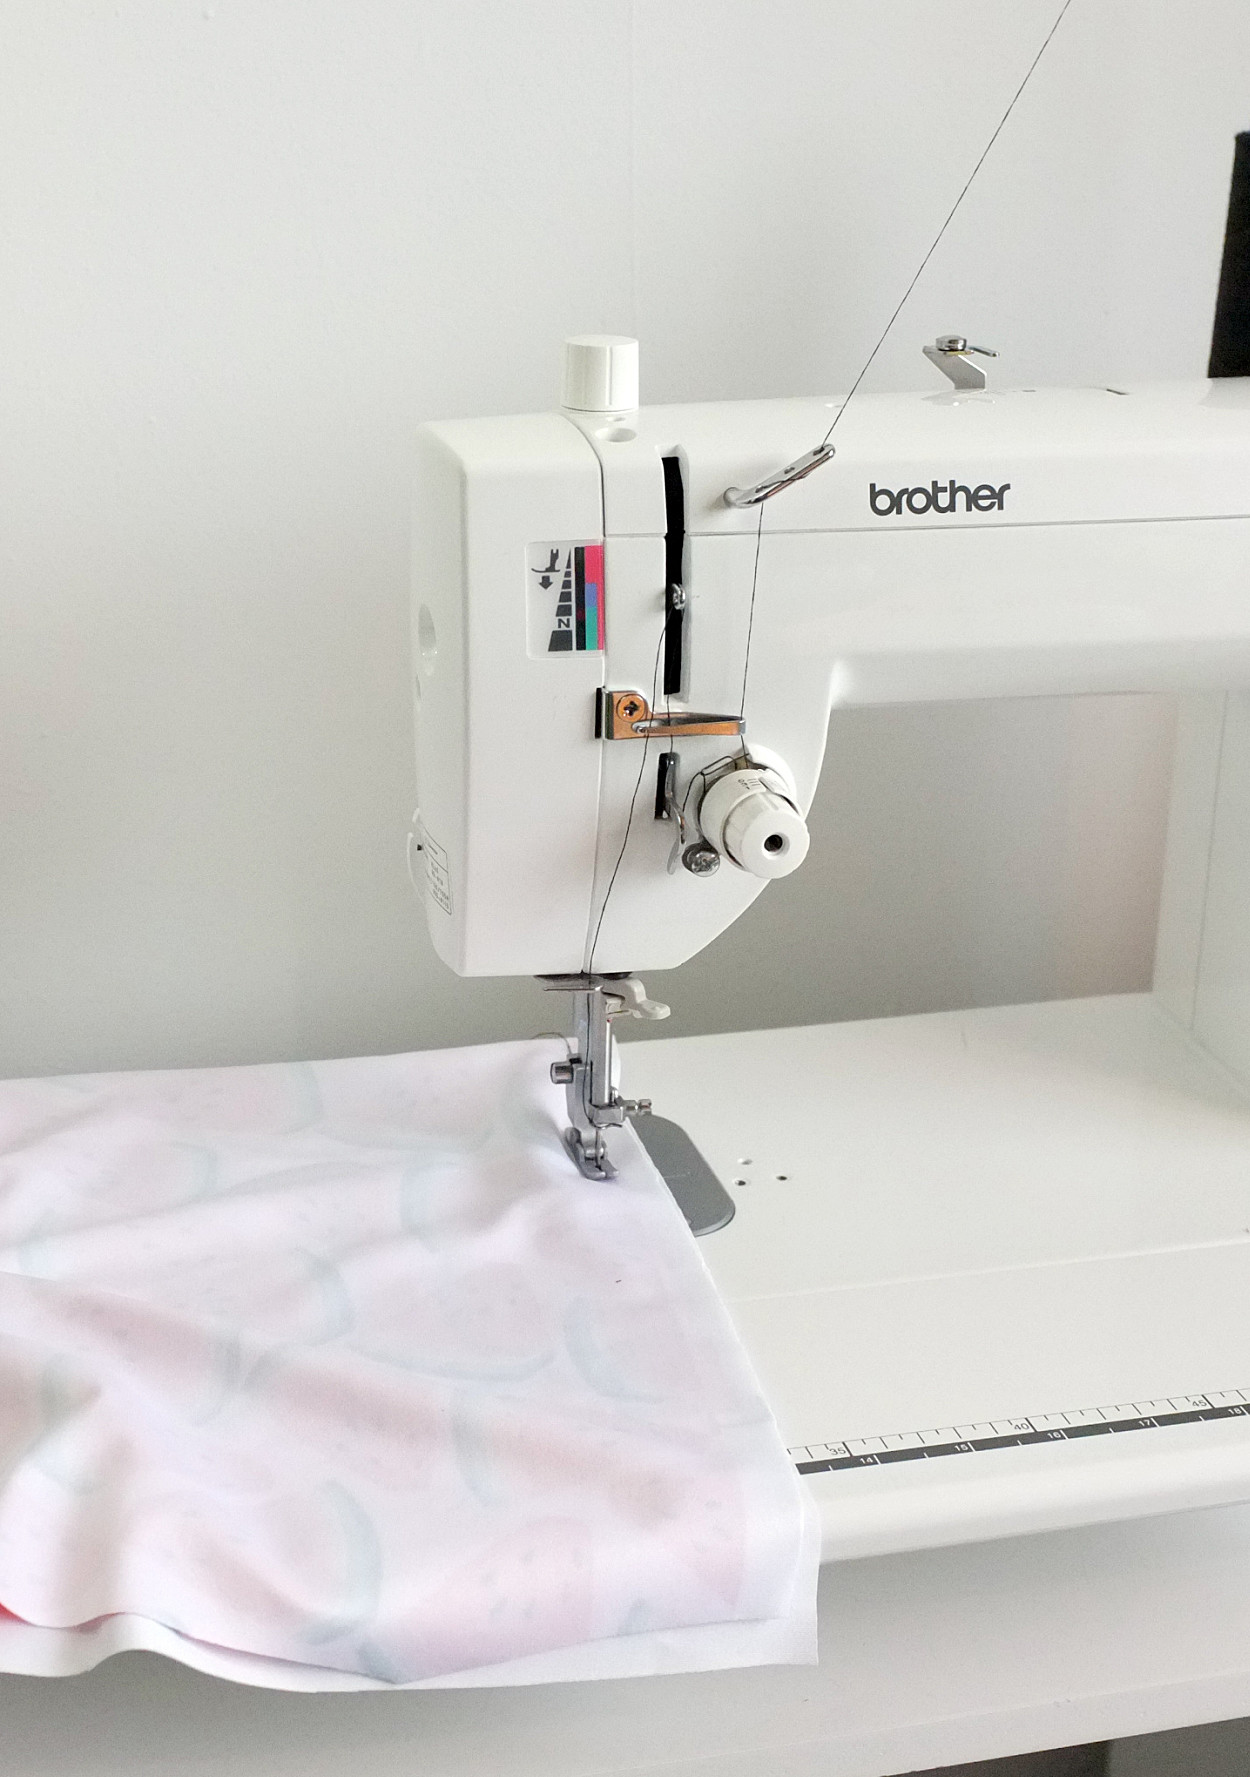 sewing machine skipping stitches